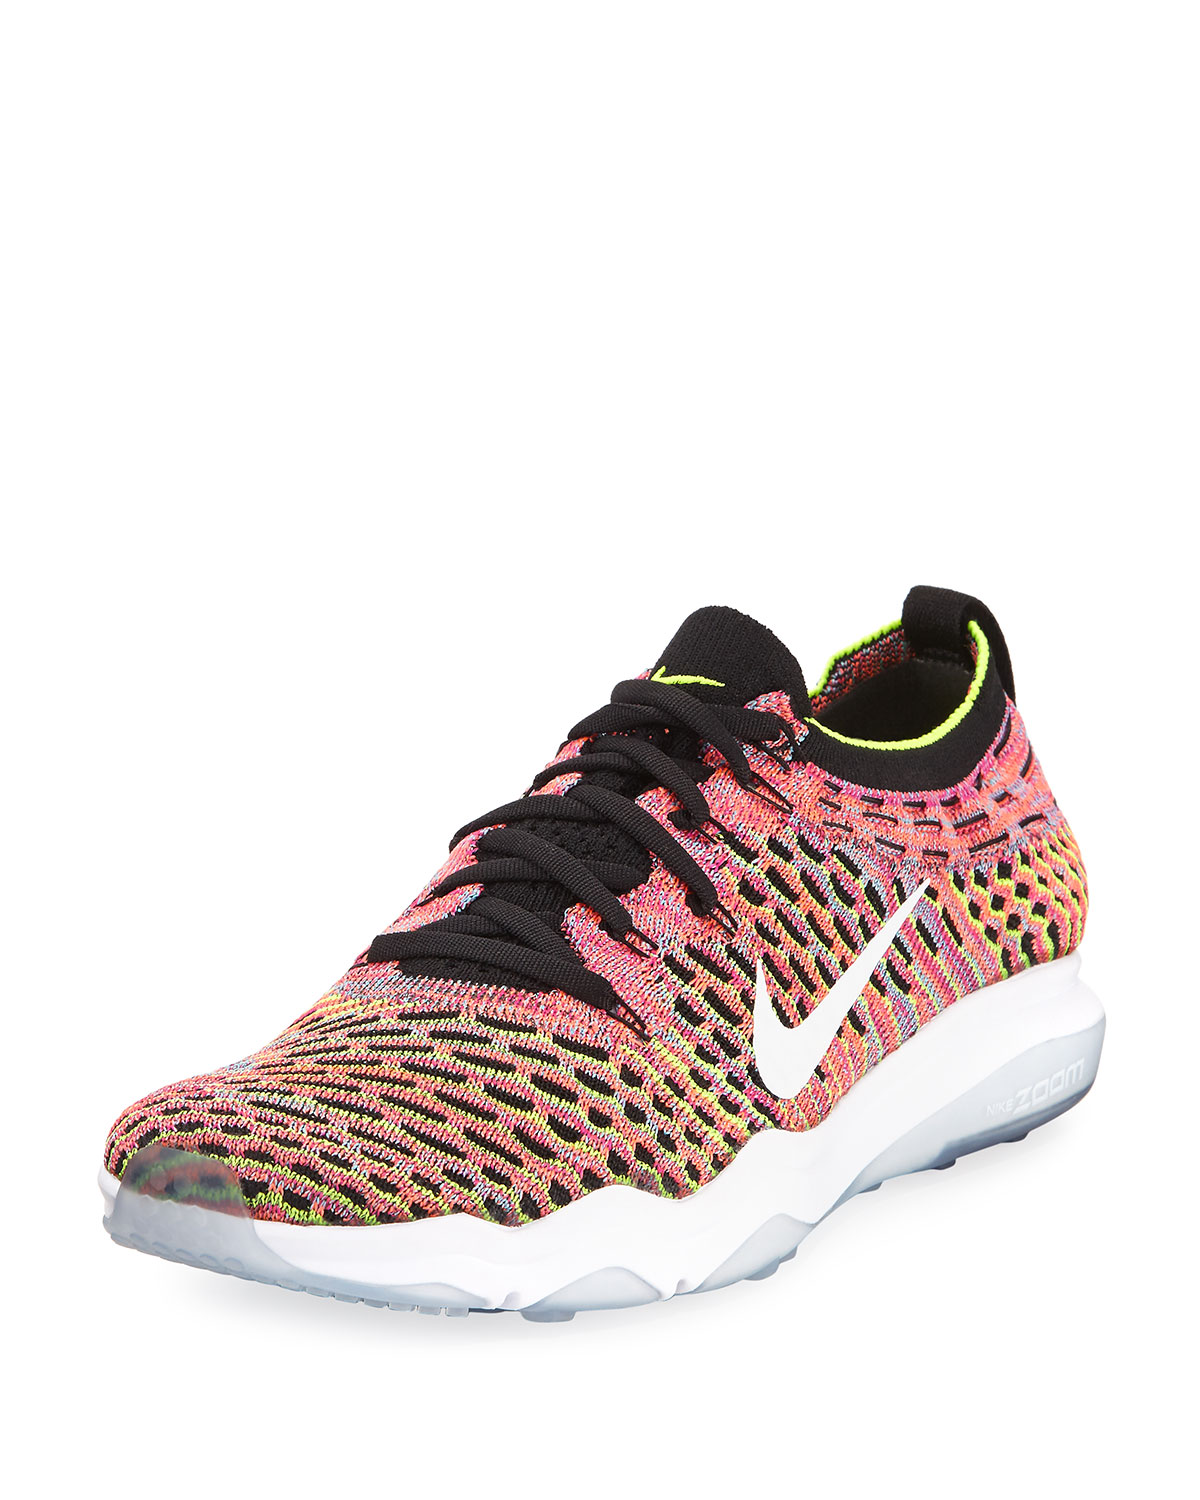 finest selection 9a87b ee3b1 NikeAir Zoom Fearless Flyknit Trainer Sneakers